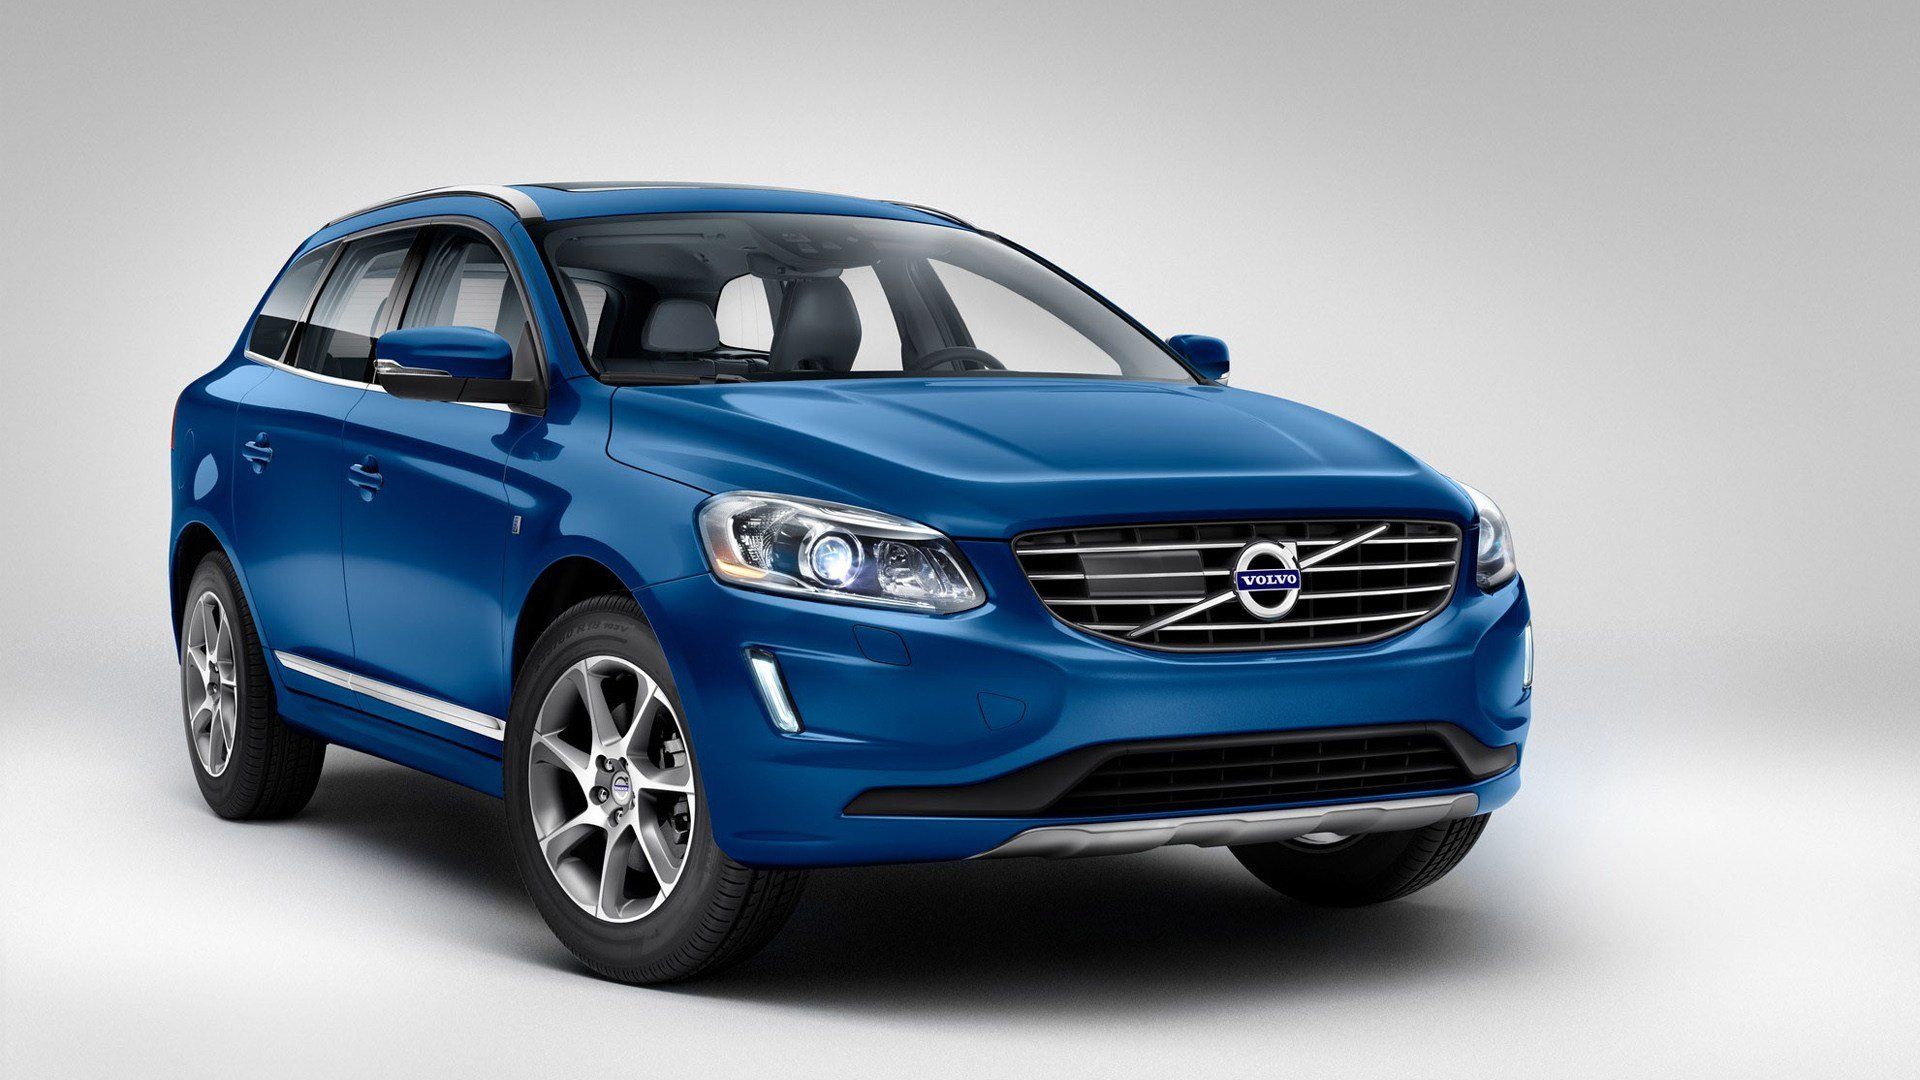 New Volvo Ocean Race Xc60 Limited Edition Wallpaper Hd Car On This Month